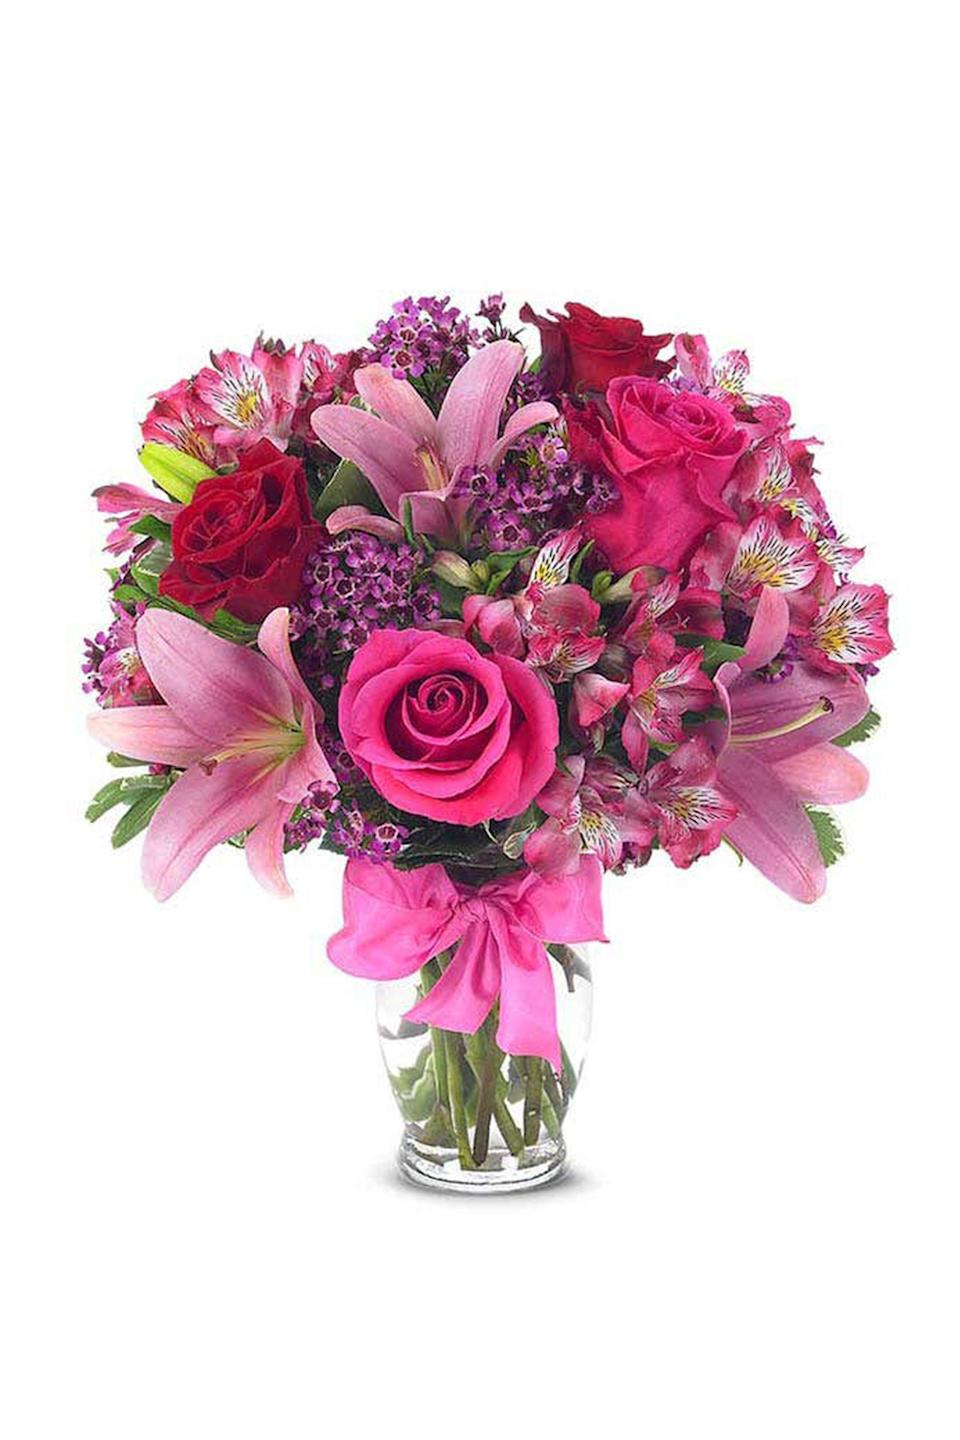 """<p><strong>FromYouFlowers.com</strong></p><p>fromyouflowers.com</p><p><strong>$38.24</strong></p><p><a href=""""https://go.redirectingat.com?id=74968X1596630&url=https%3A%2F%2Fwww.fromyouflowers.com%2Fproducts%2Feuropean_romance_bouquet.htm&sref=https%3A%2F%2Fwww.redbookmag.com%2Flife%2Fg35152525%2Fbest-flower-delivery-service%2F"""" rel=""""nofollow noopener"""" target=""""_blank"""" data-ylk=""""slk:Shop Now"""" class=""""link rapid-noclick-resp"""">Shop Now</a></p><p>In a pinch and need flowers delivered now? <a href=""""https://go.redirectingat.com?id=74968X1596630&url=https%3A%2F%2Fwww.fromyouflowers.com%2F&sref=https%3A%2F%2Fwww.redbookmag.com%2Flife%2Fg35152525%2Fbest-flower-delivery-service%2F"""" rel=""""nofollow noopener"""" target=""""_blank"""" data-ylk=""""slk:FromYouFlowers.com"""" class=""""link rapid-noclick-resp"""">FromYouFlowers.com</a> offers same day flower delivery nationwide. By utilizing local floral partners near you, they are able to a create a gift with fresh blooms, delivered with a free card personalized message.</p>"""